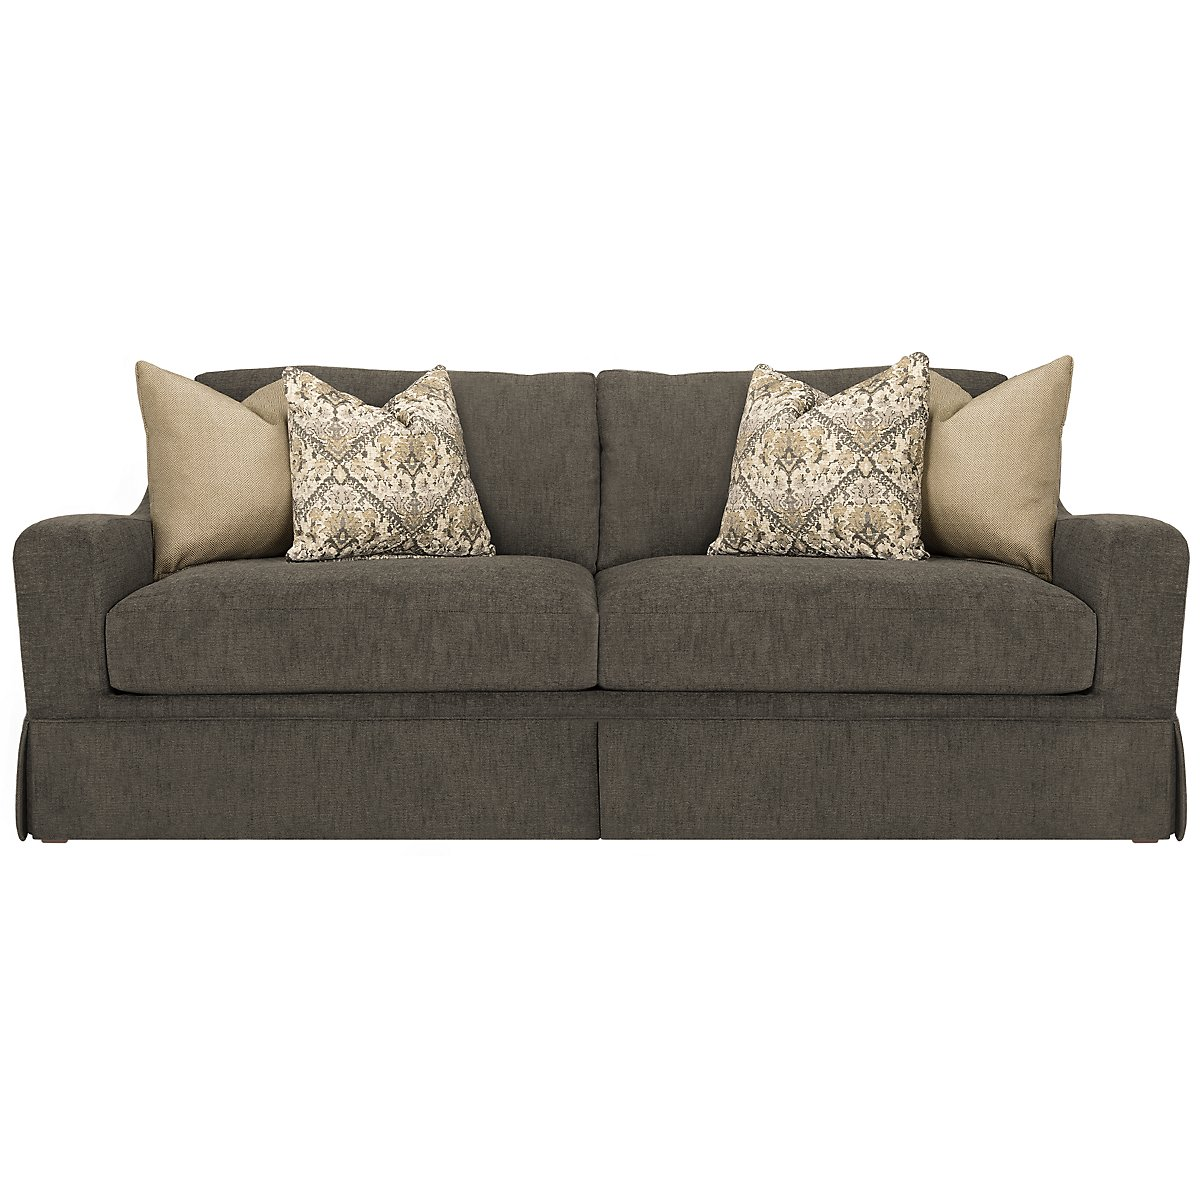 city furniture hallie dk gray fabric sofa